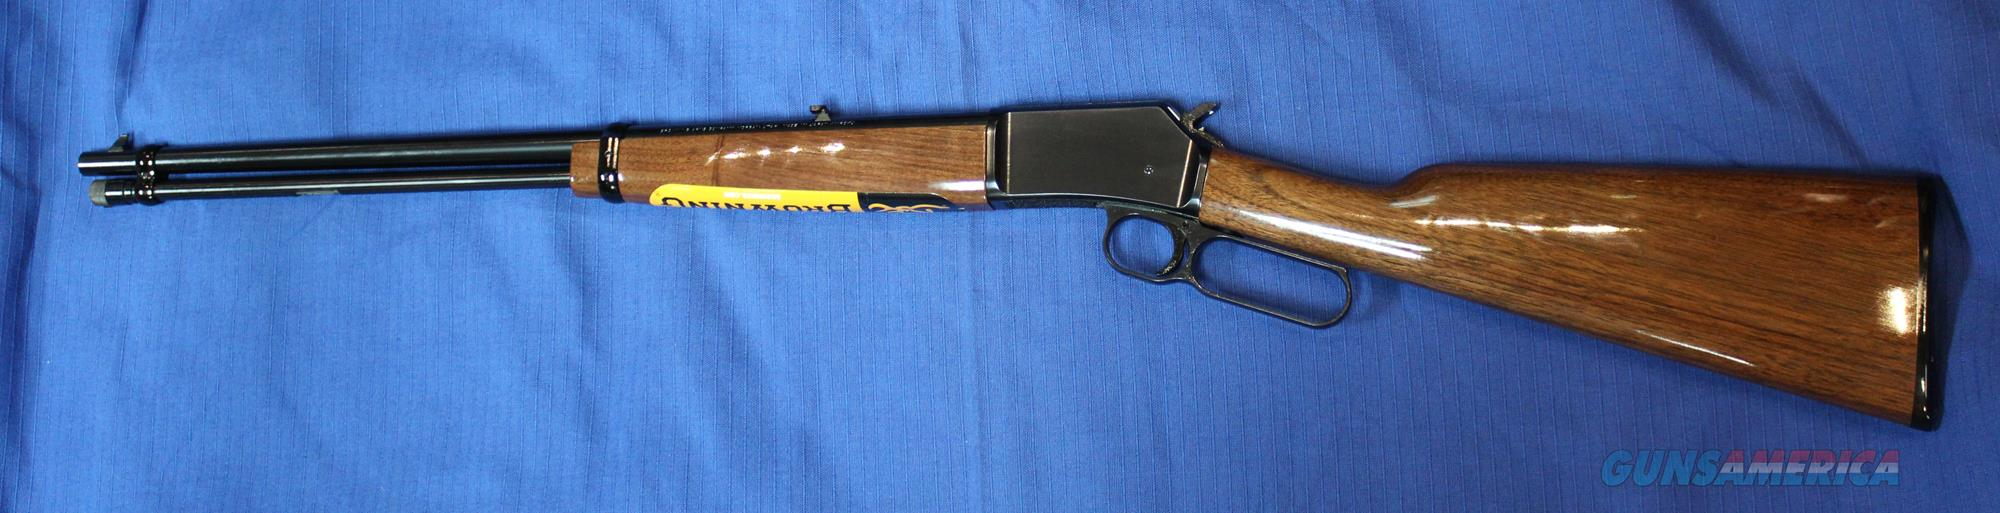 BROWNING BL-22 GRADE I LEVER ACTION 22 S,L,LR NEW IN BOX   Guns > Rifles > Browning Rifles > Lever Action